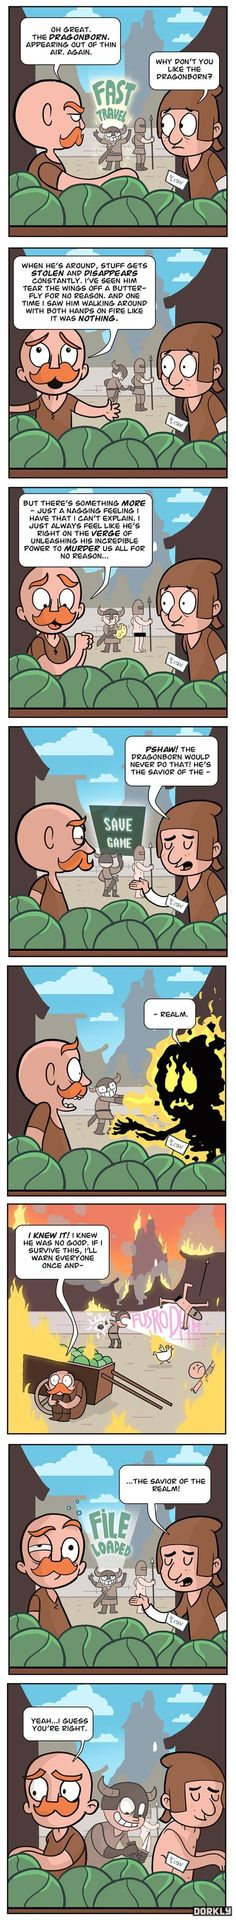 this is a nice #comic strip Skyrim: Deja Vu i like the ending so funny #lol #hovacone @retweets_fast @Dare_RT @ReTweetQueen86 @Quickest_Rts @YTRetweets @YTShoutouts https://www.youtube.com/user/hovacones?Sub_confirmation=1